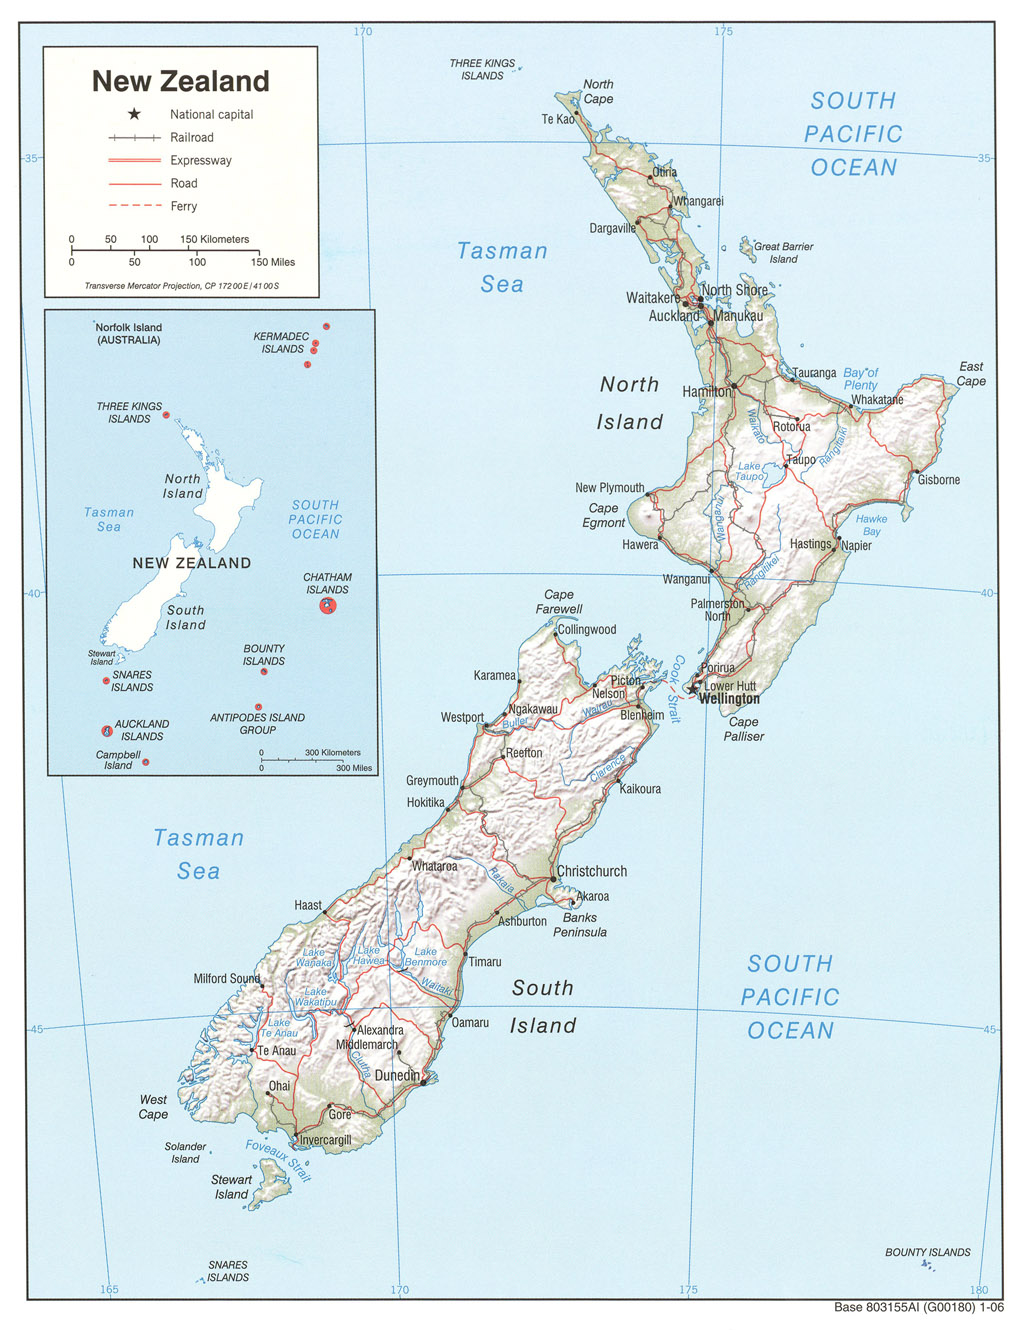 New Zealand Mountains Map.New Zealand Maps Perry Castaneda Map Collection Ut Library Online